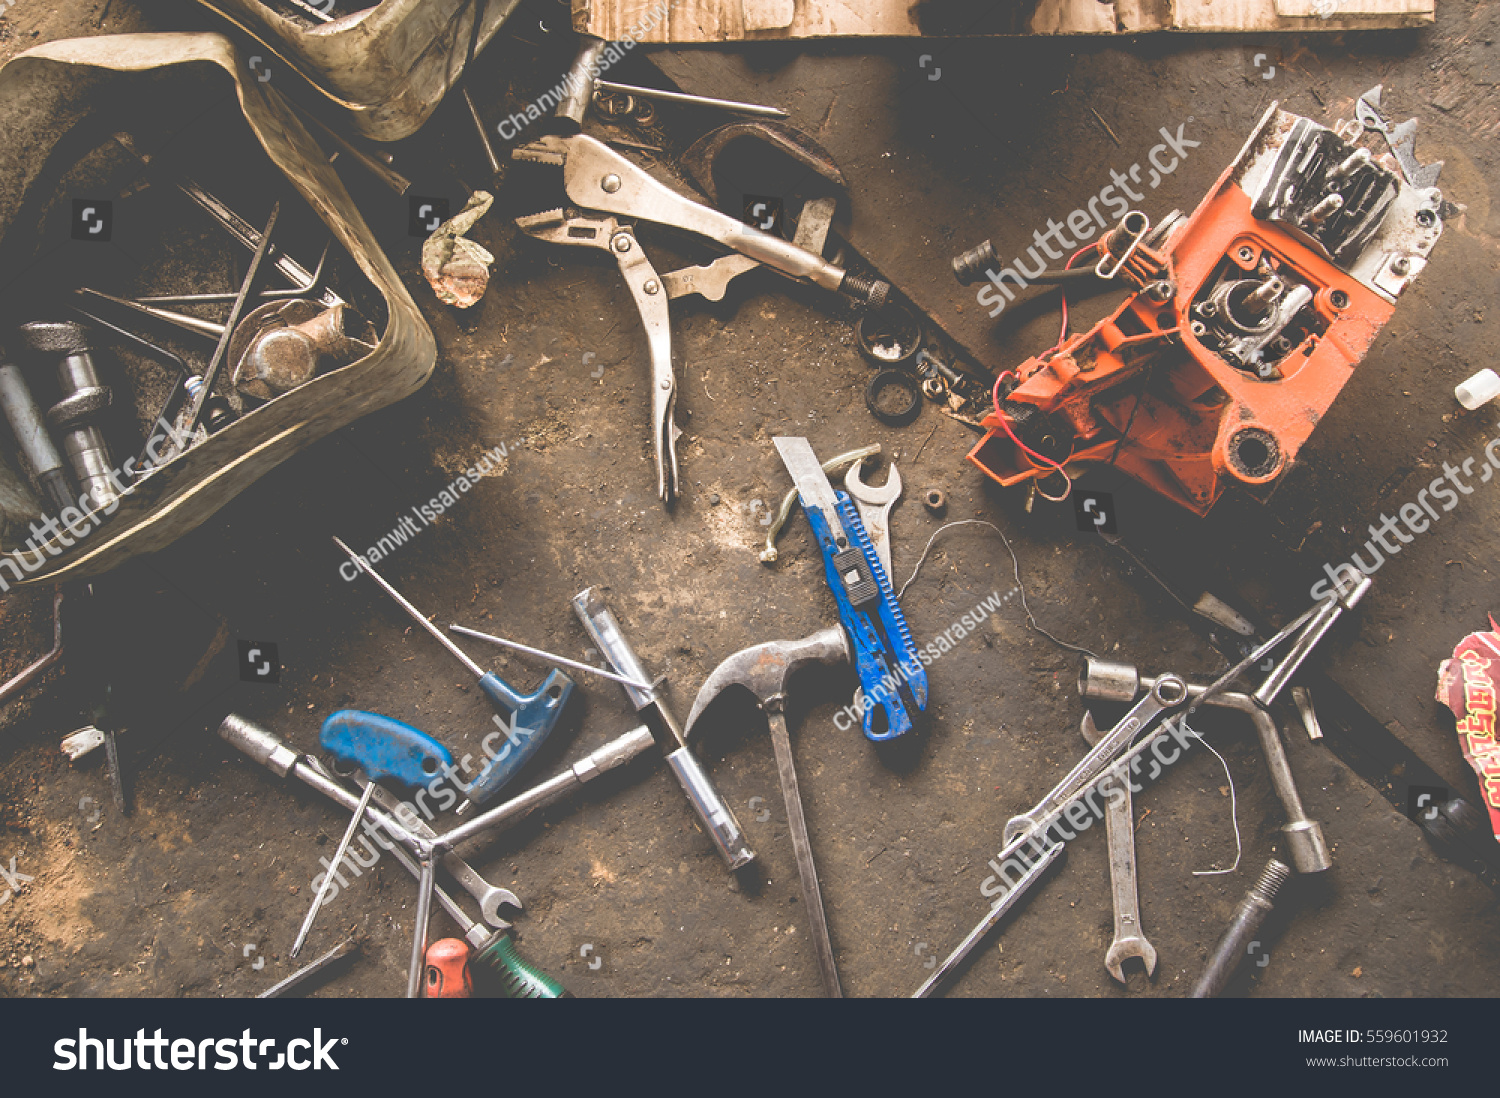 many tools on dirty floor set stock photo 559601932 shutterstock. Black Bedroom Furniture Sets. Home Design Ideas